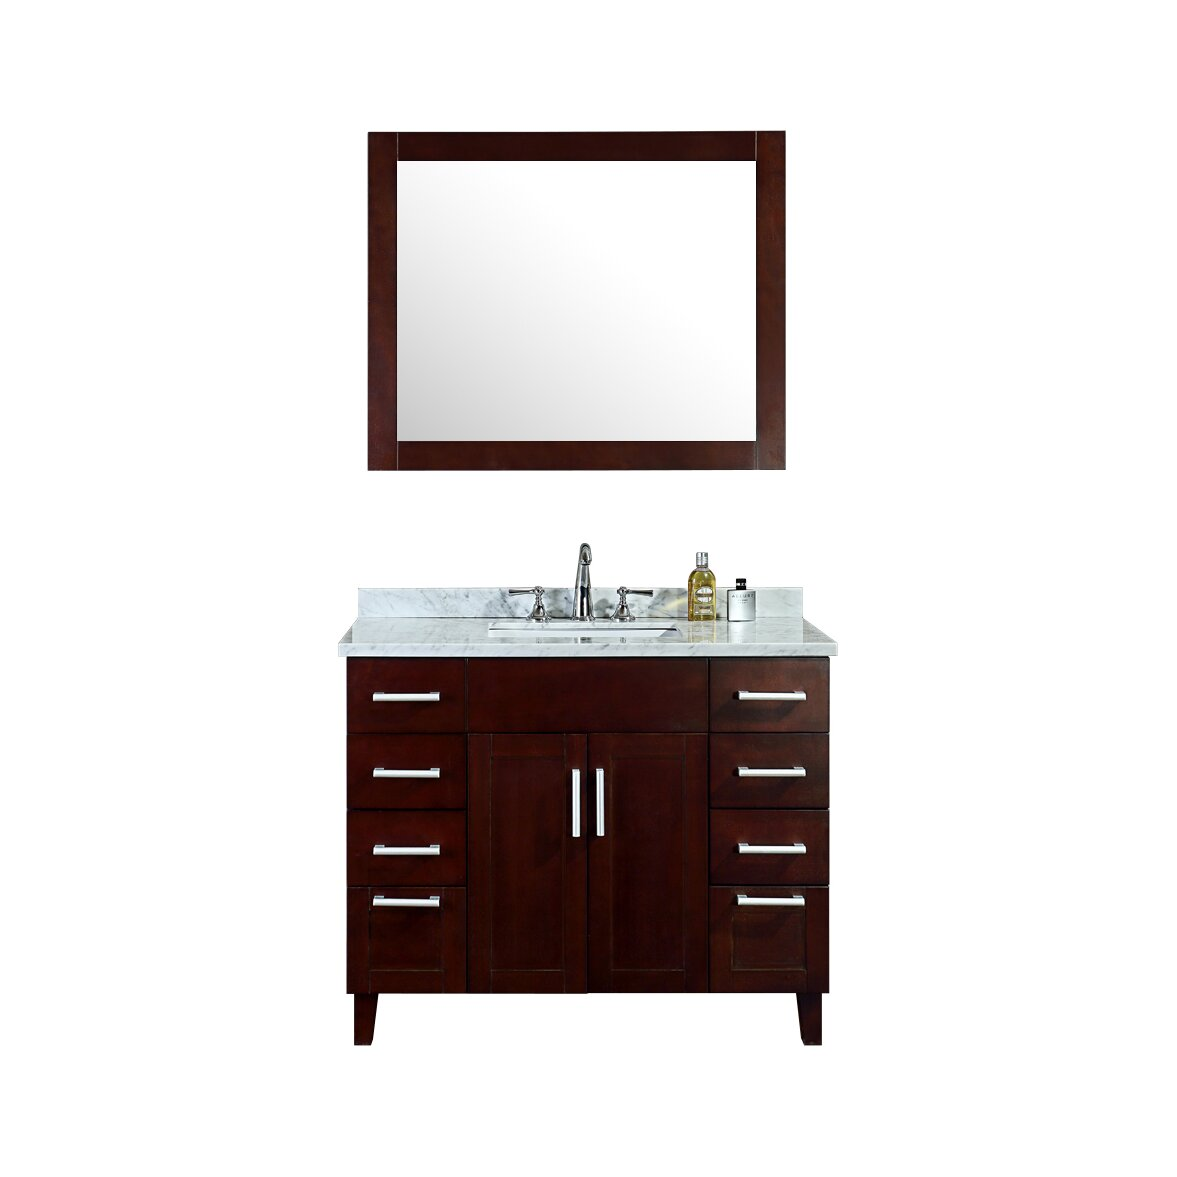 Ariel bath frampton 42 single bathroom vanity set with for Bath and vanity set